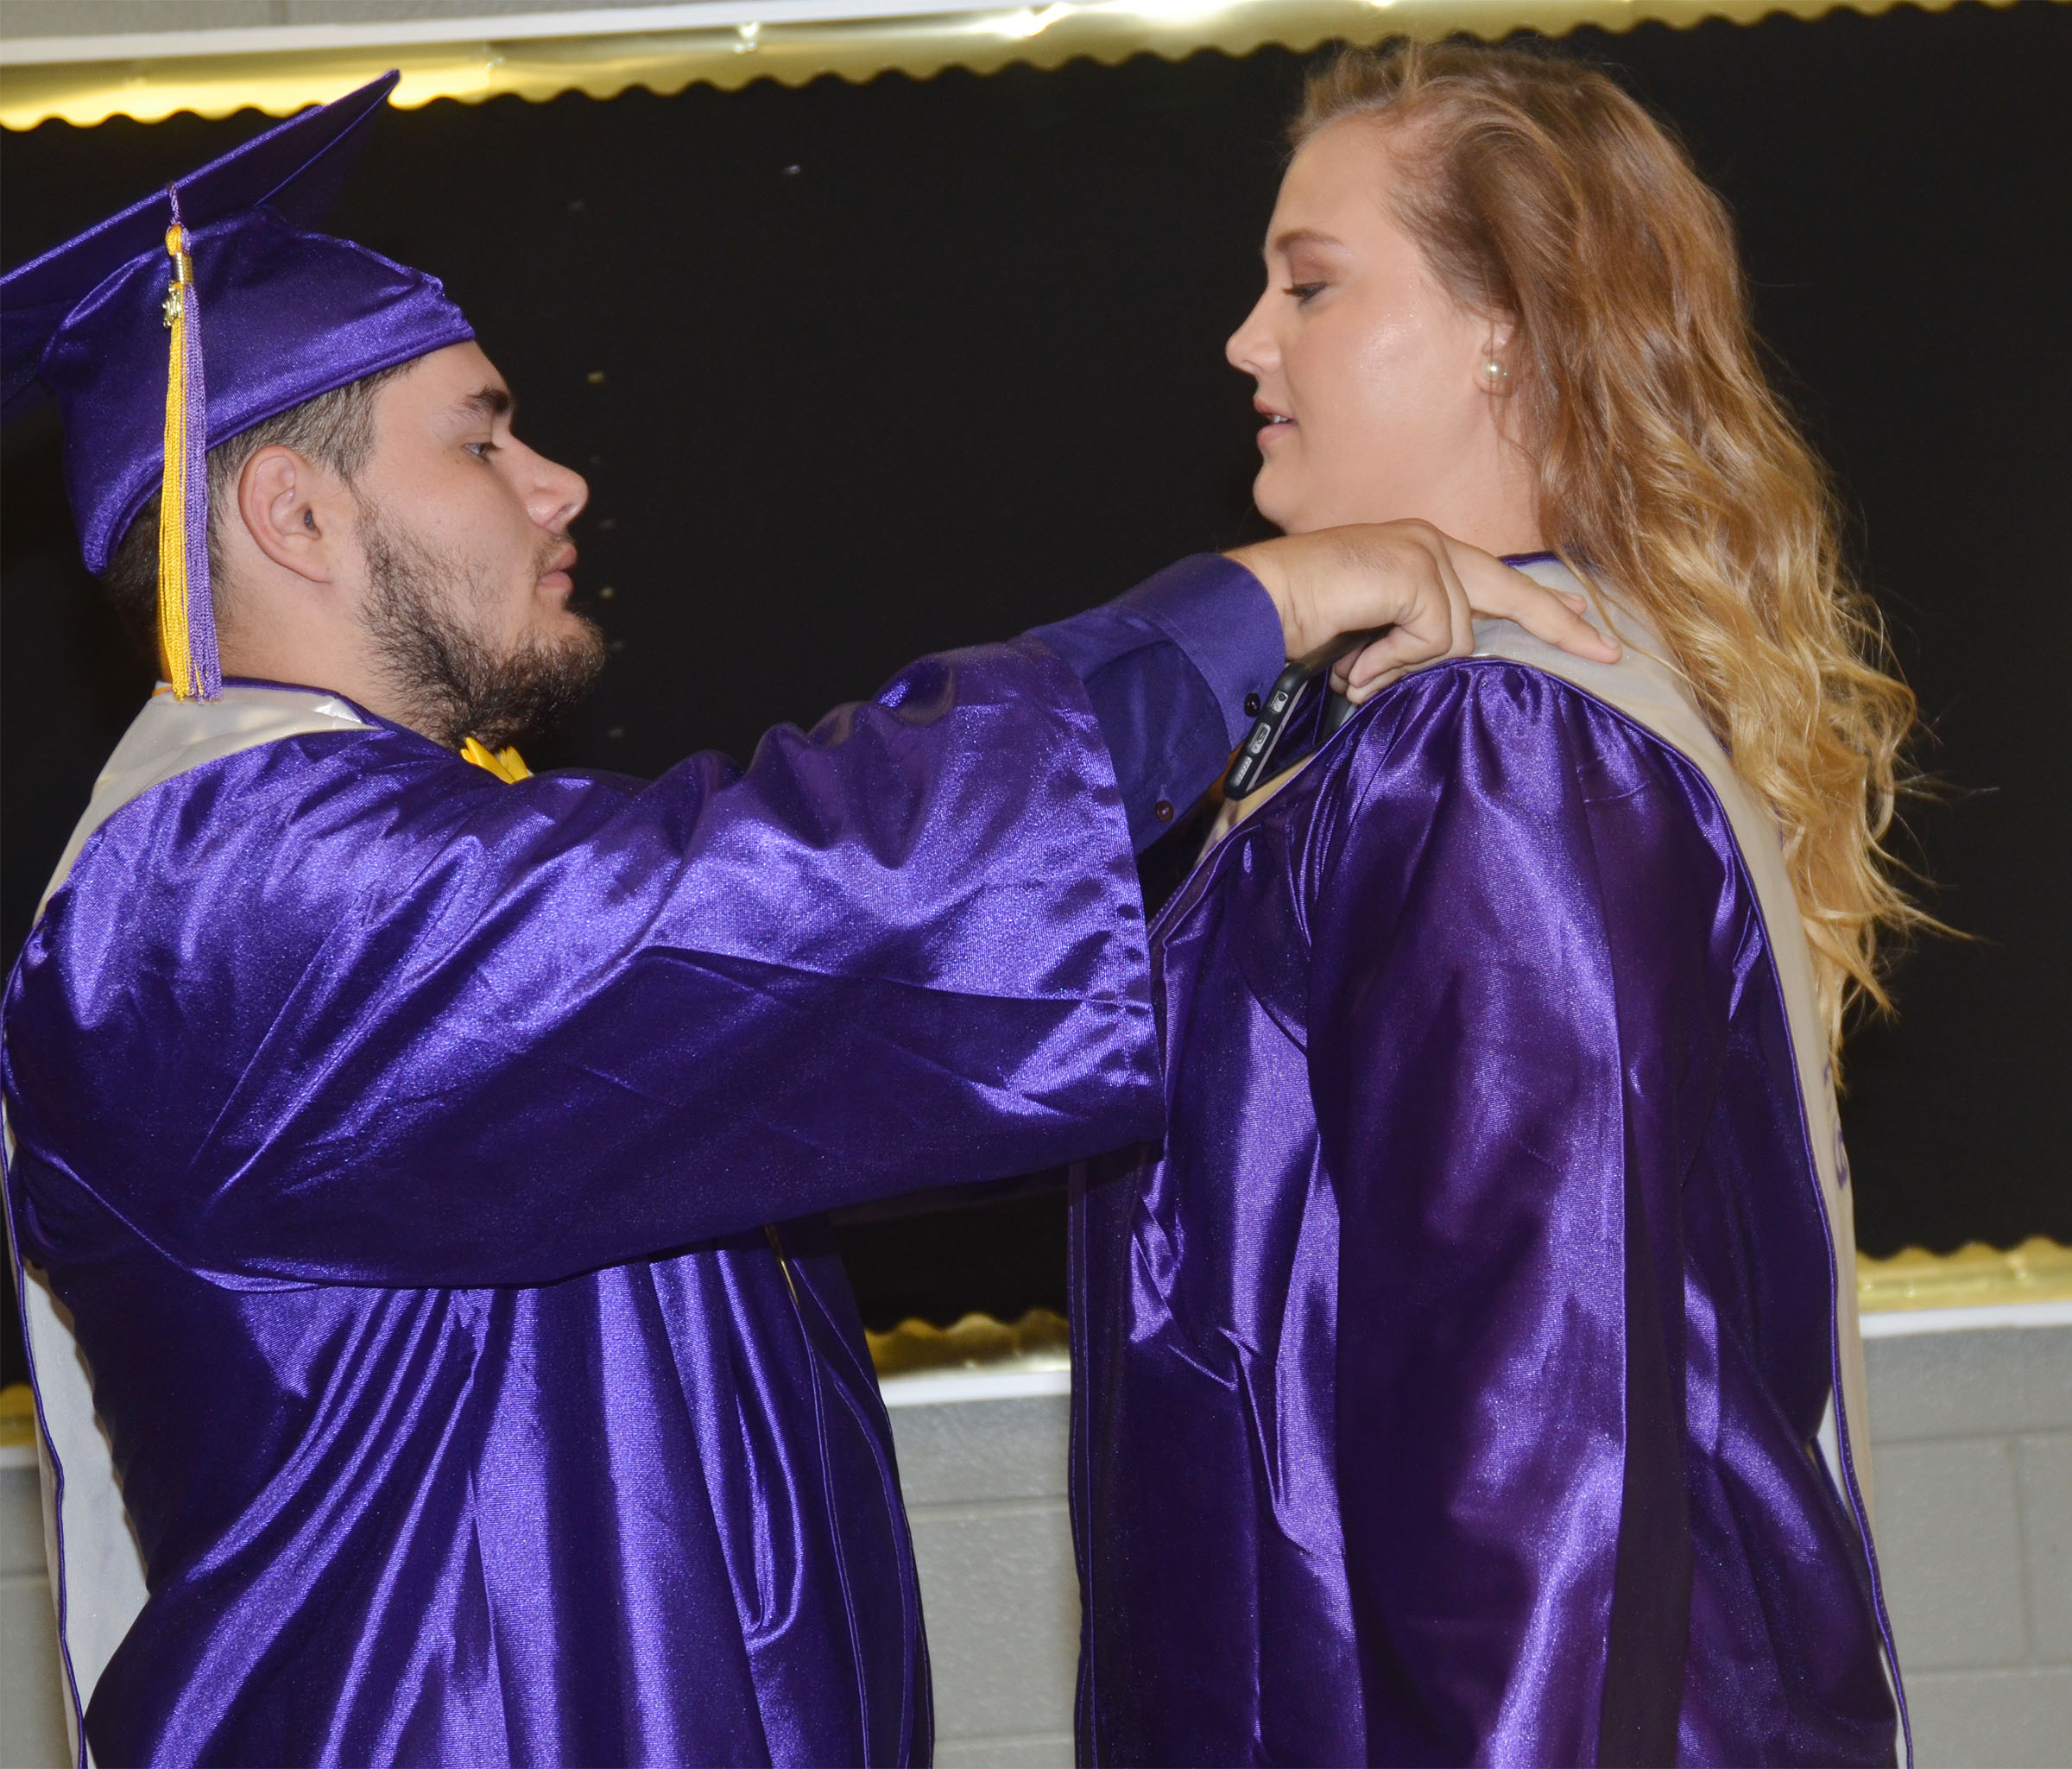 CHS senior Logan Brown helps classmate Brenna Wethington adjust her sash before graduation.